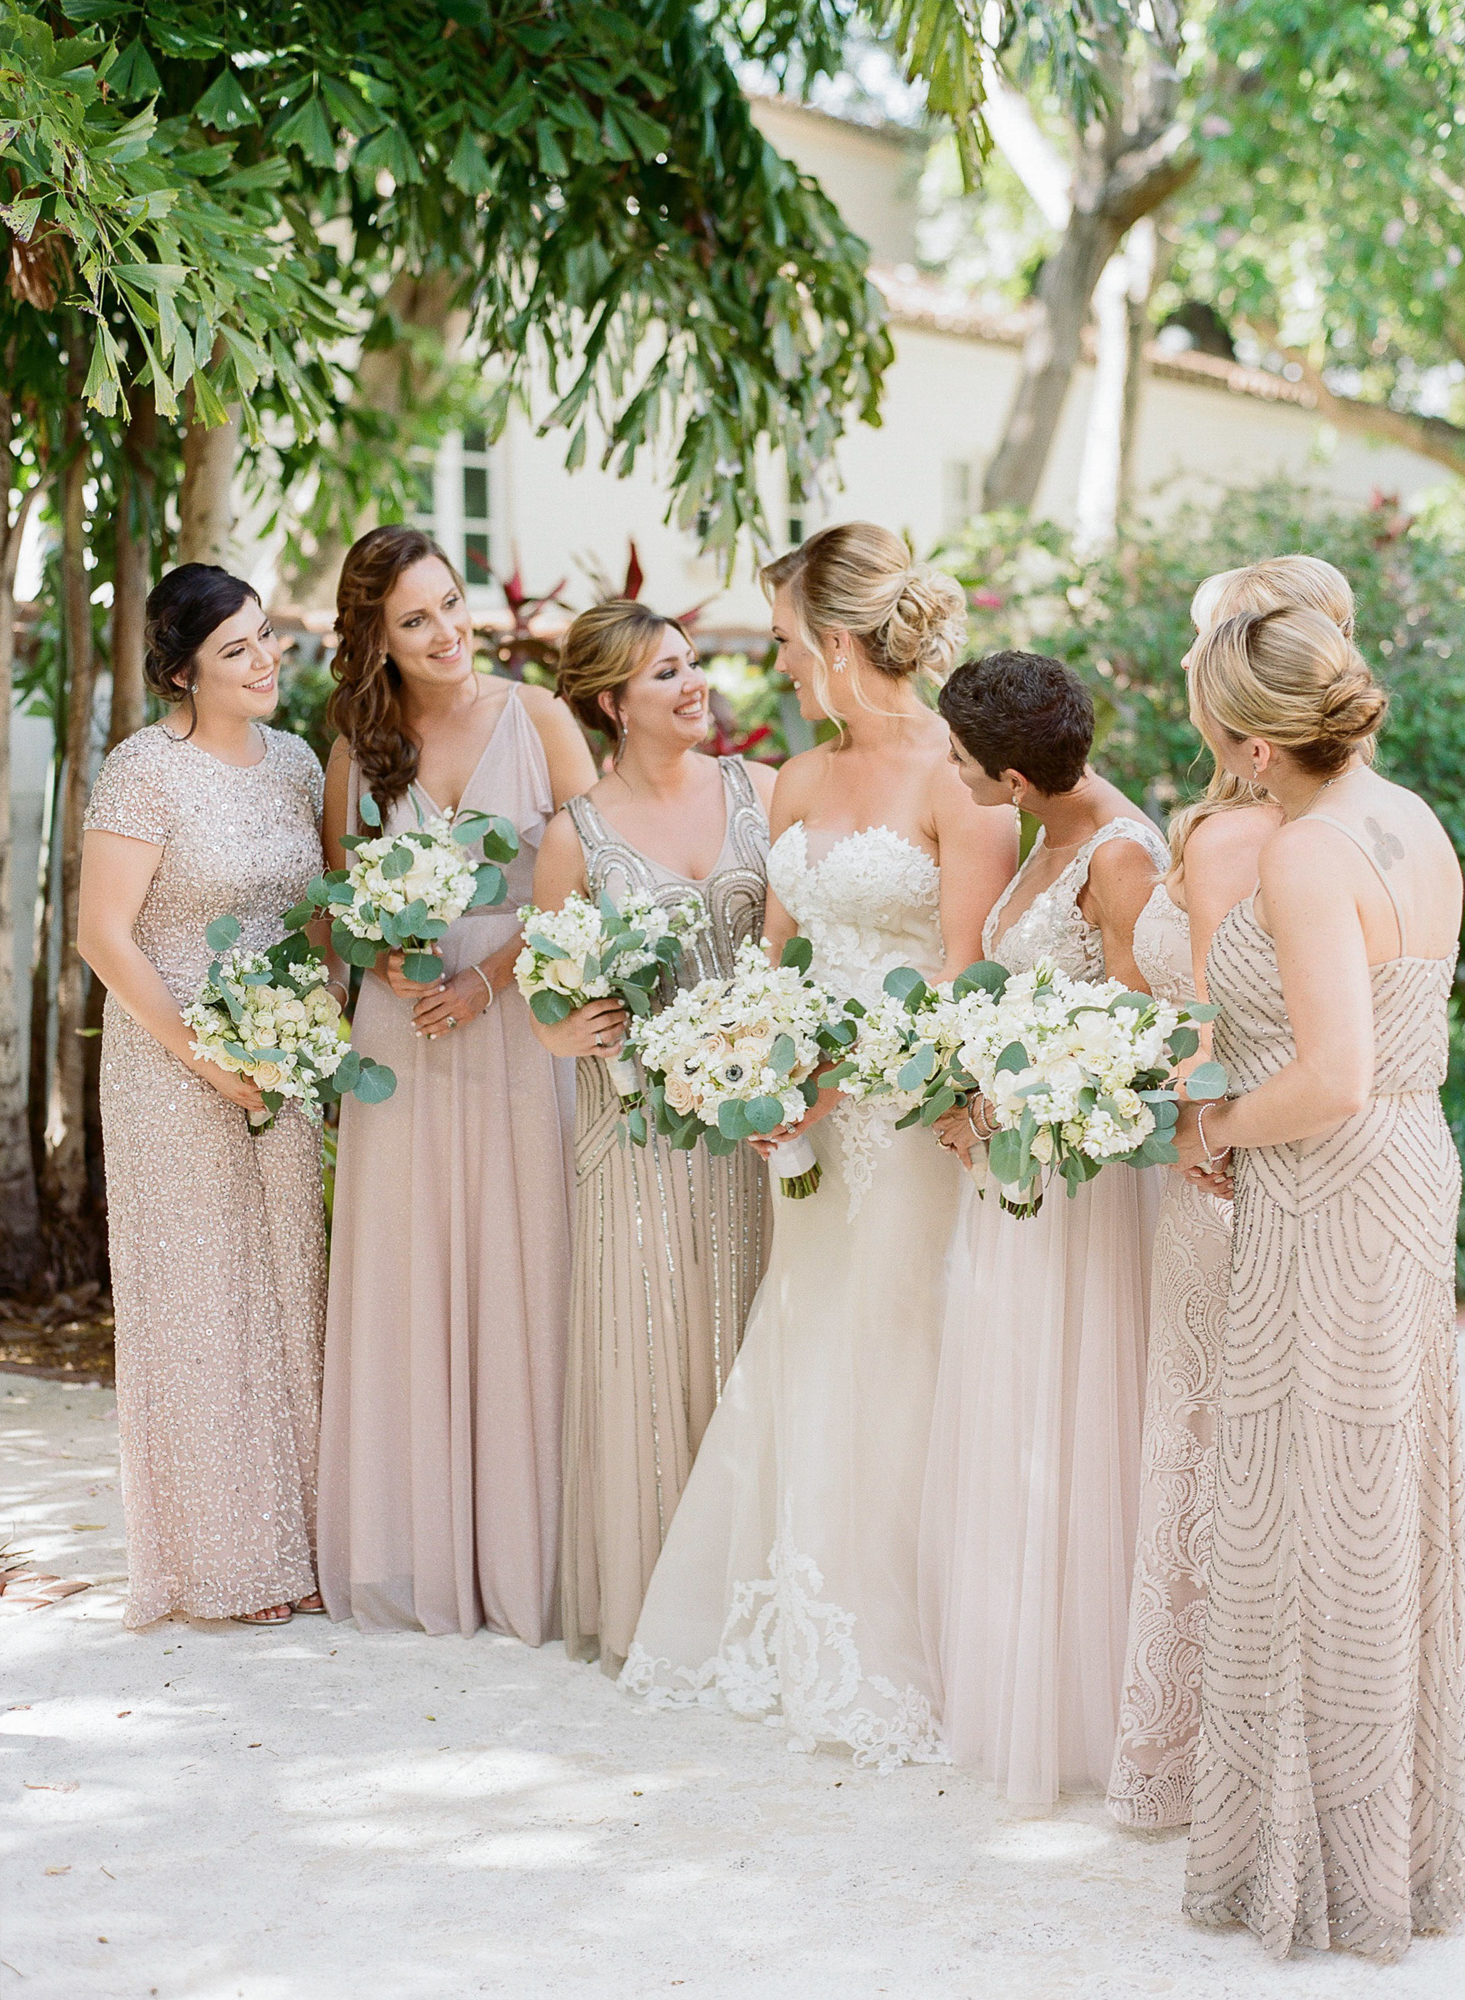 Side photo of bride standing with her bridal party looking at each other wearing blush mix-matched gowns and holding their bouquets.